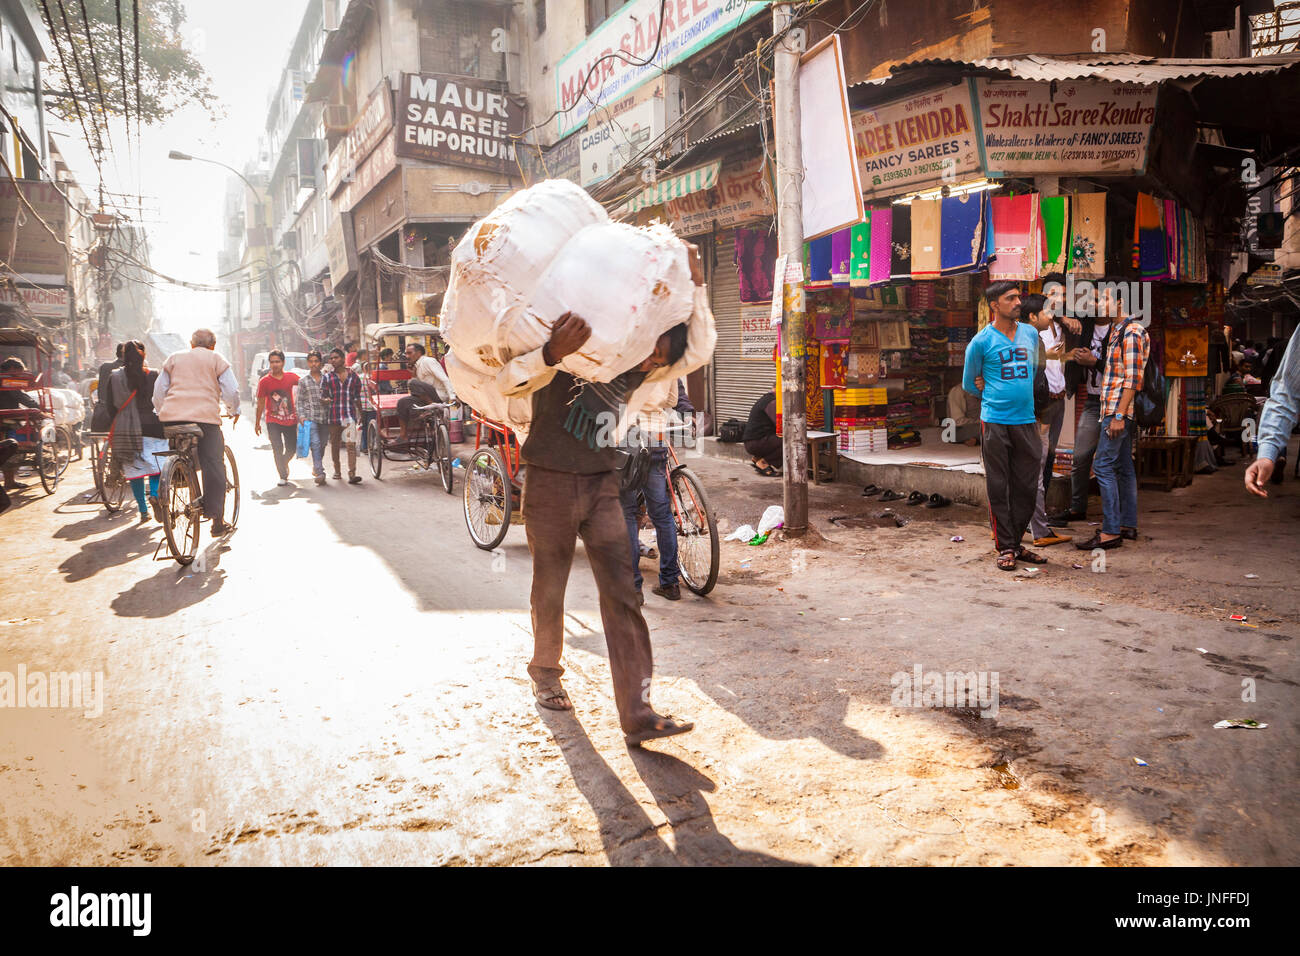 A man carrying a heavy and awkward load on his shoulders through the streets of Chandni Chowk, one of the busiest and oldest markets in Delhi, India. - Stock Image